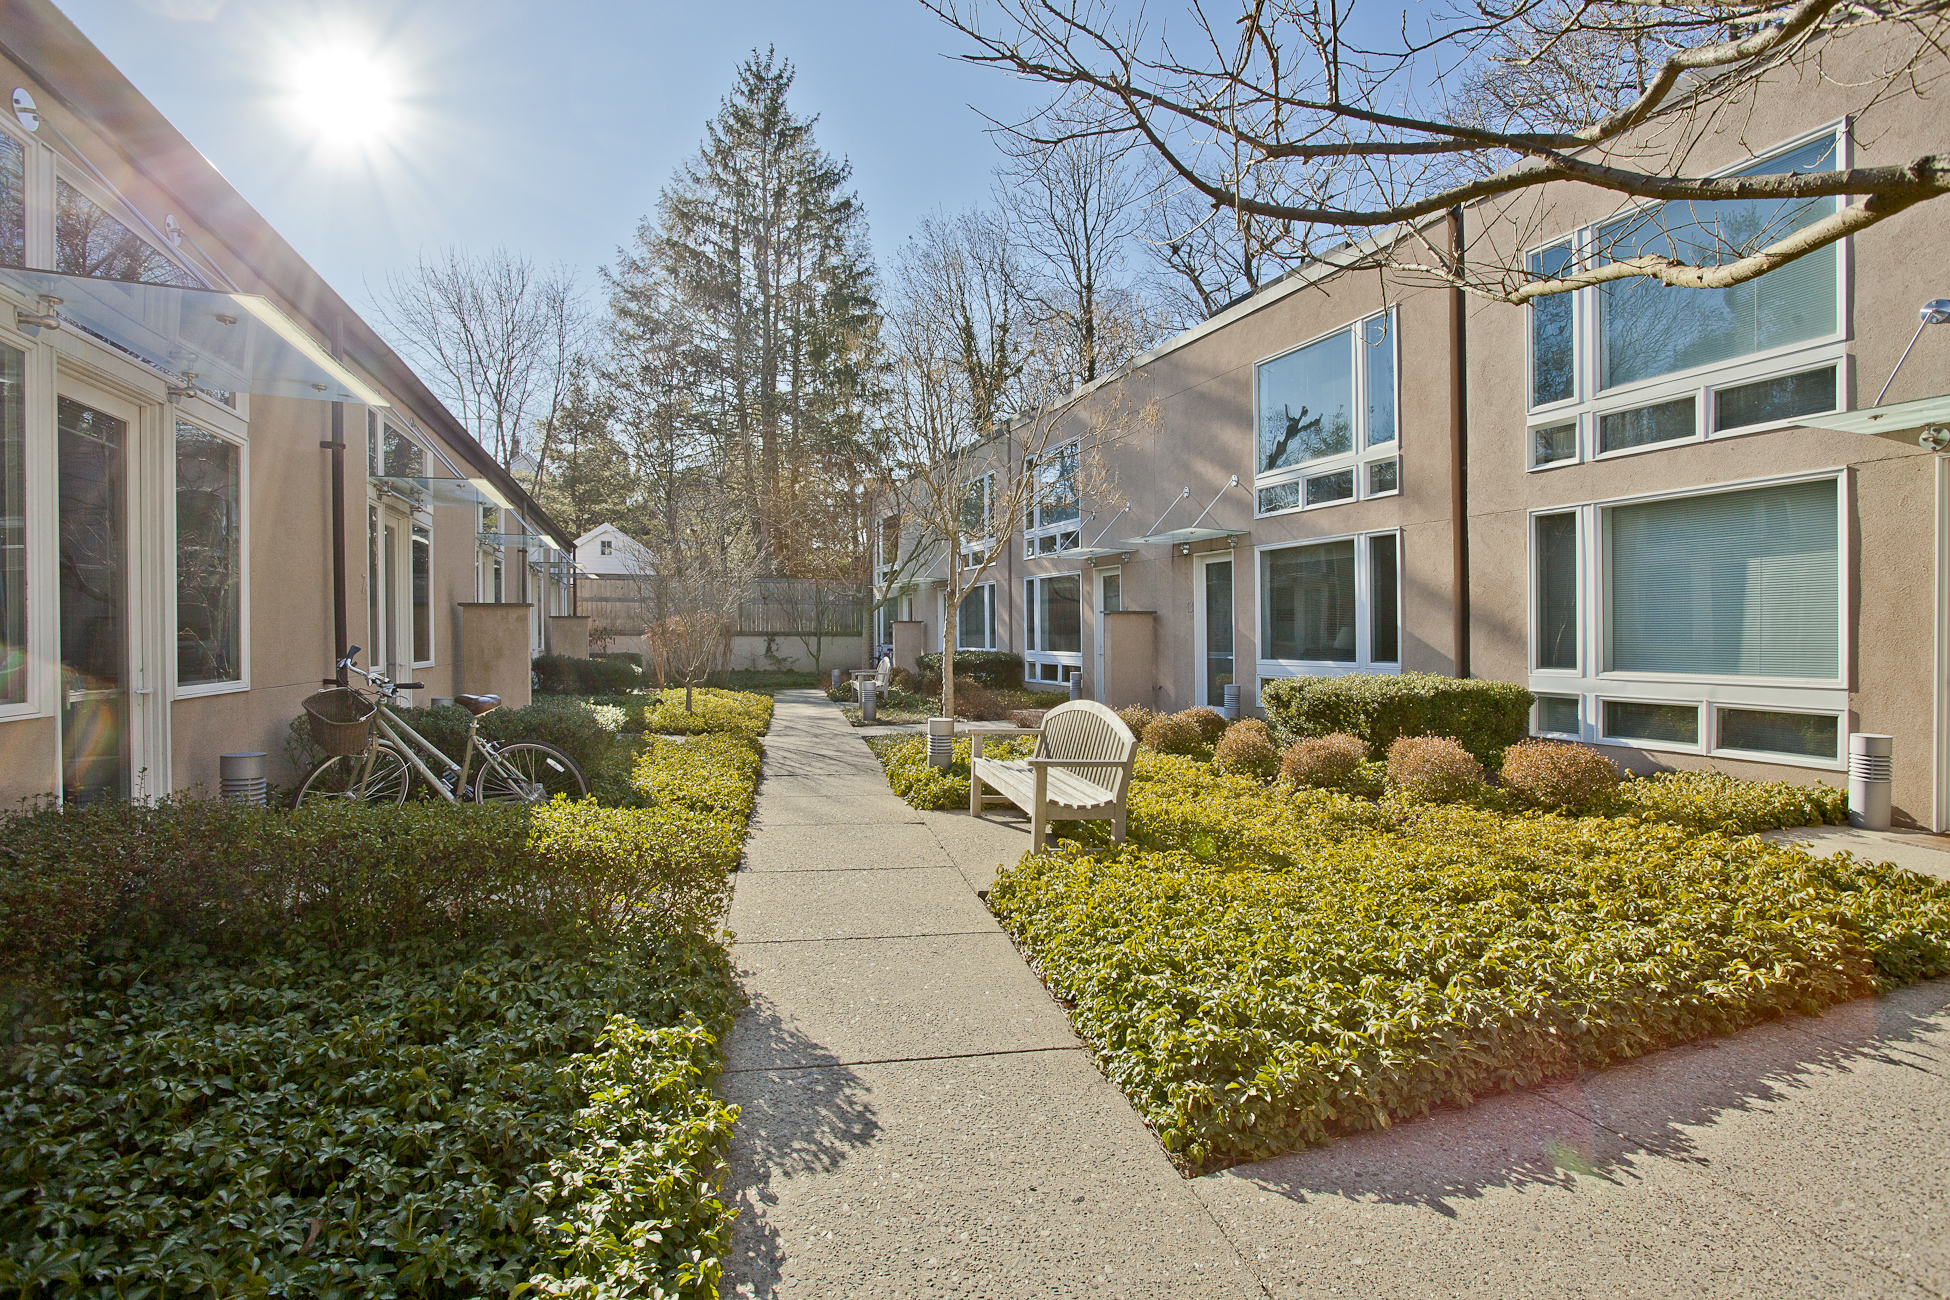 Property For Sale at Loft Style Condominium in Princeton